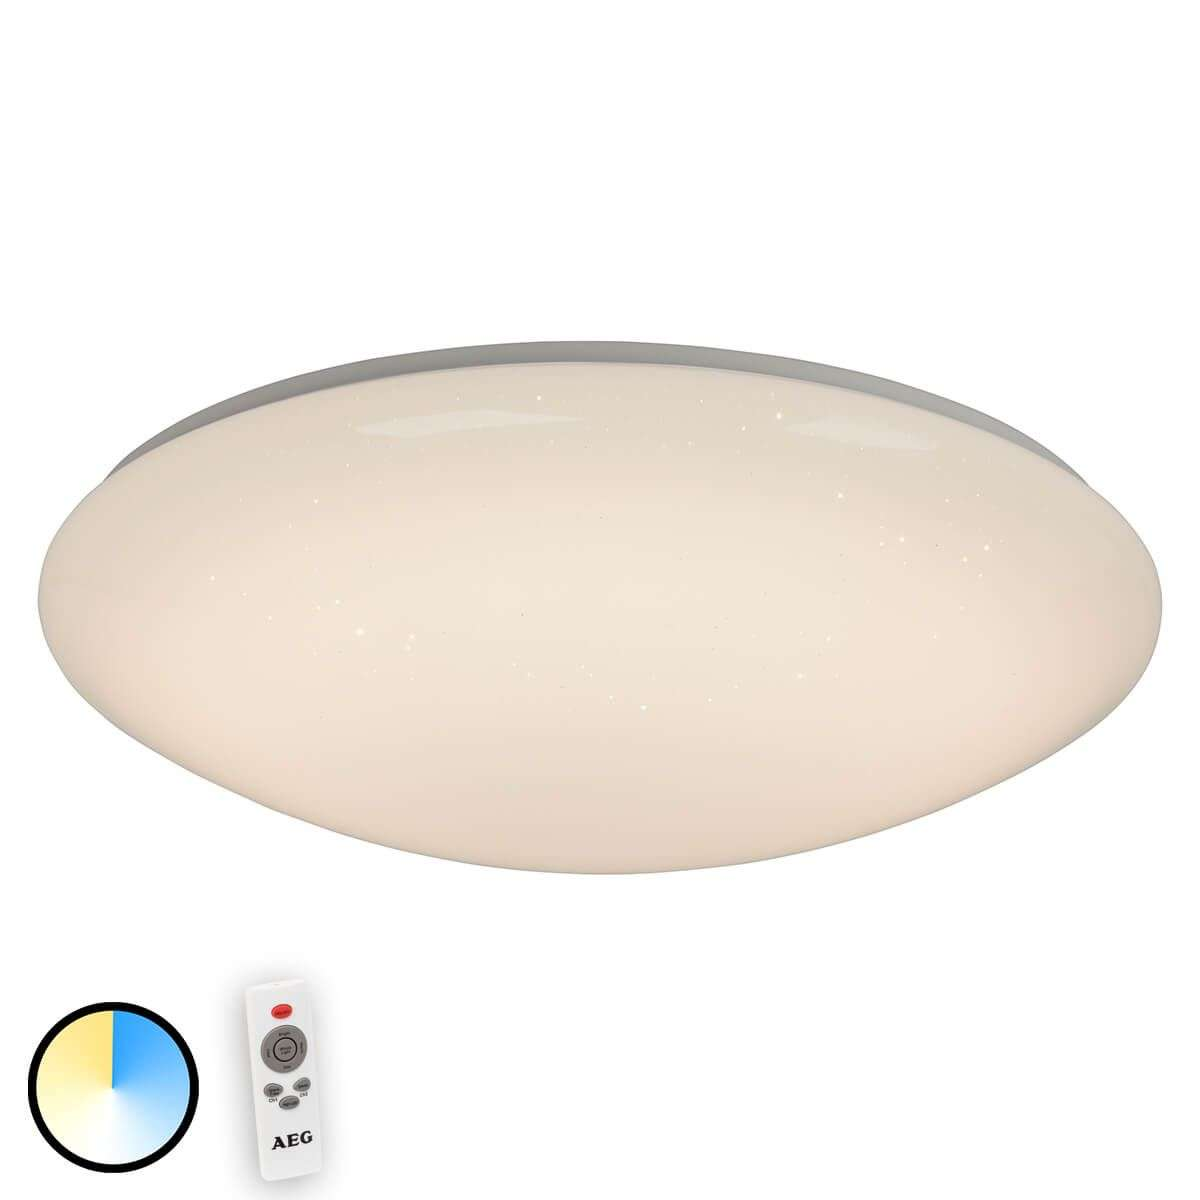 Led Ceiling Lights Company : Mono led ceiling light with remote control lights